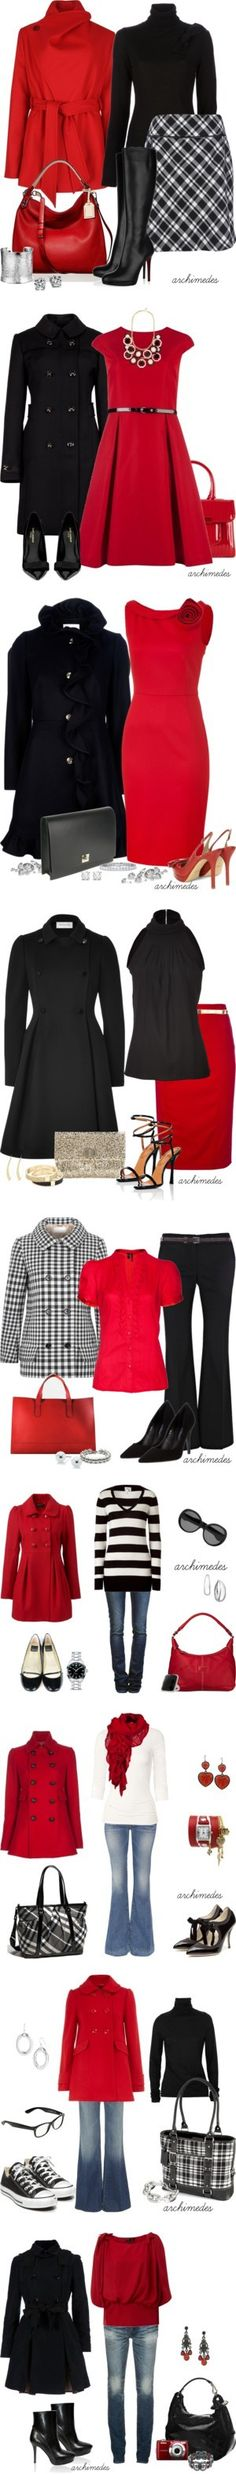 Red and Black by archimedes16 on Polyvore featuring Ted Baker, RED Valentino, Reed Krakoff, Wallis, Christian Louboutin, Blue Nile, Yves Saint Laurent, Kate Spade, kate spade and ted baker